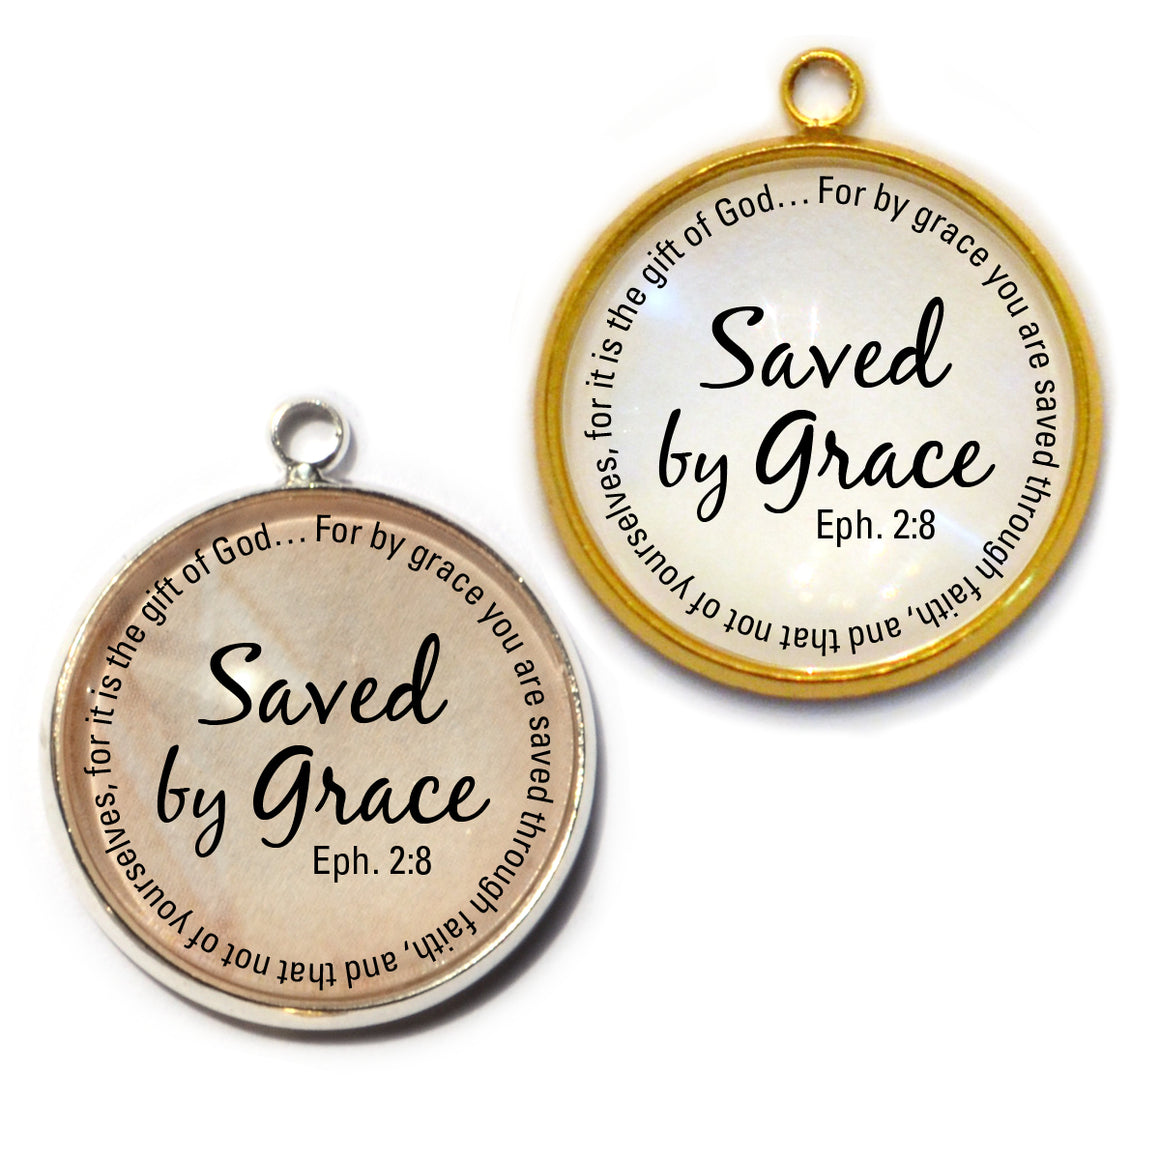 """Saved by Grace"" Ephesians 2:8 Scripture Charms for Jewelry Making, 20mm, Silver, Gold"